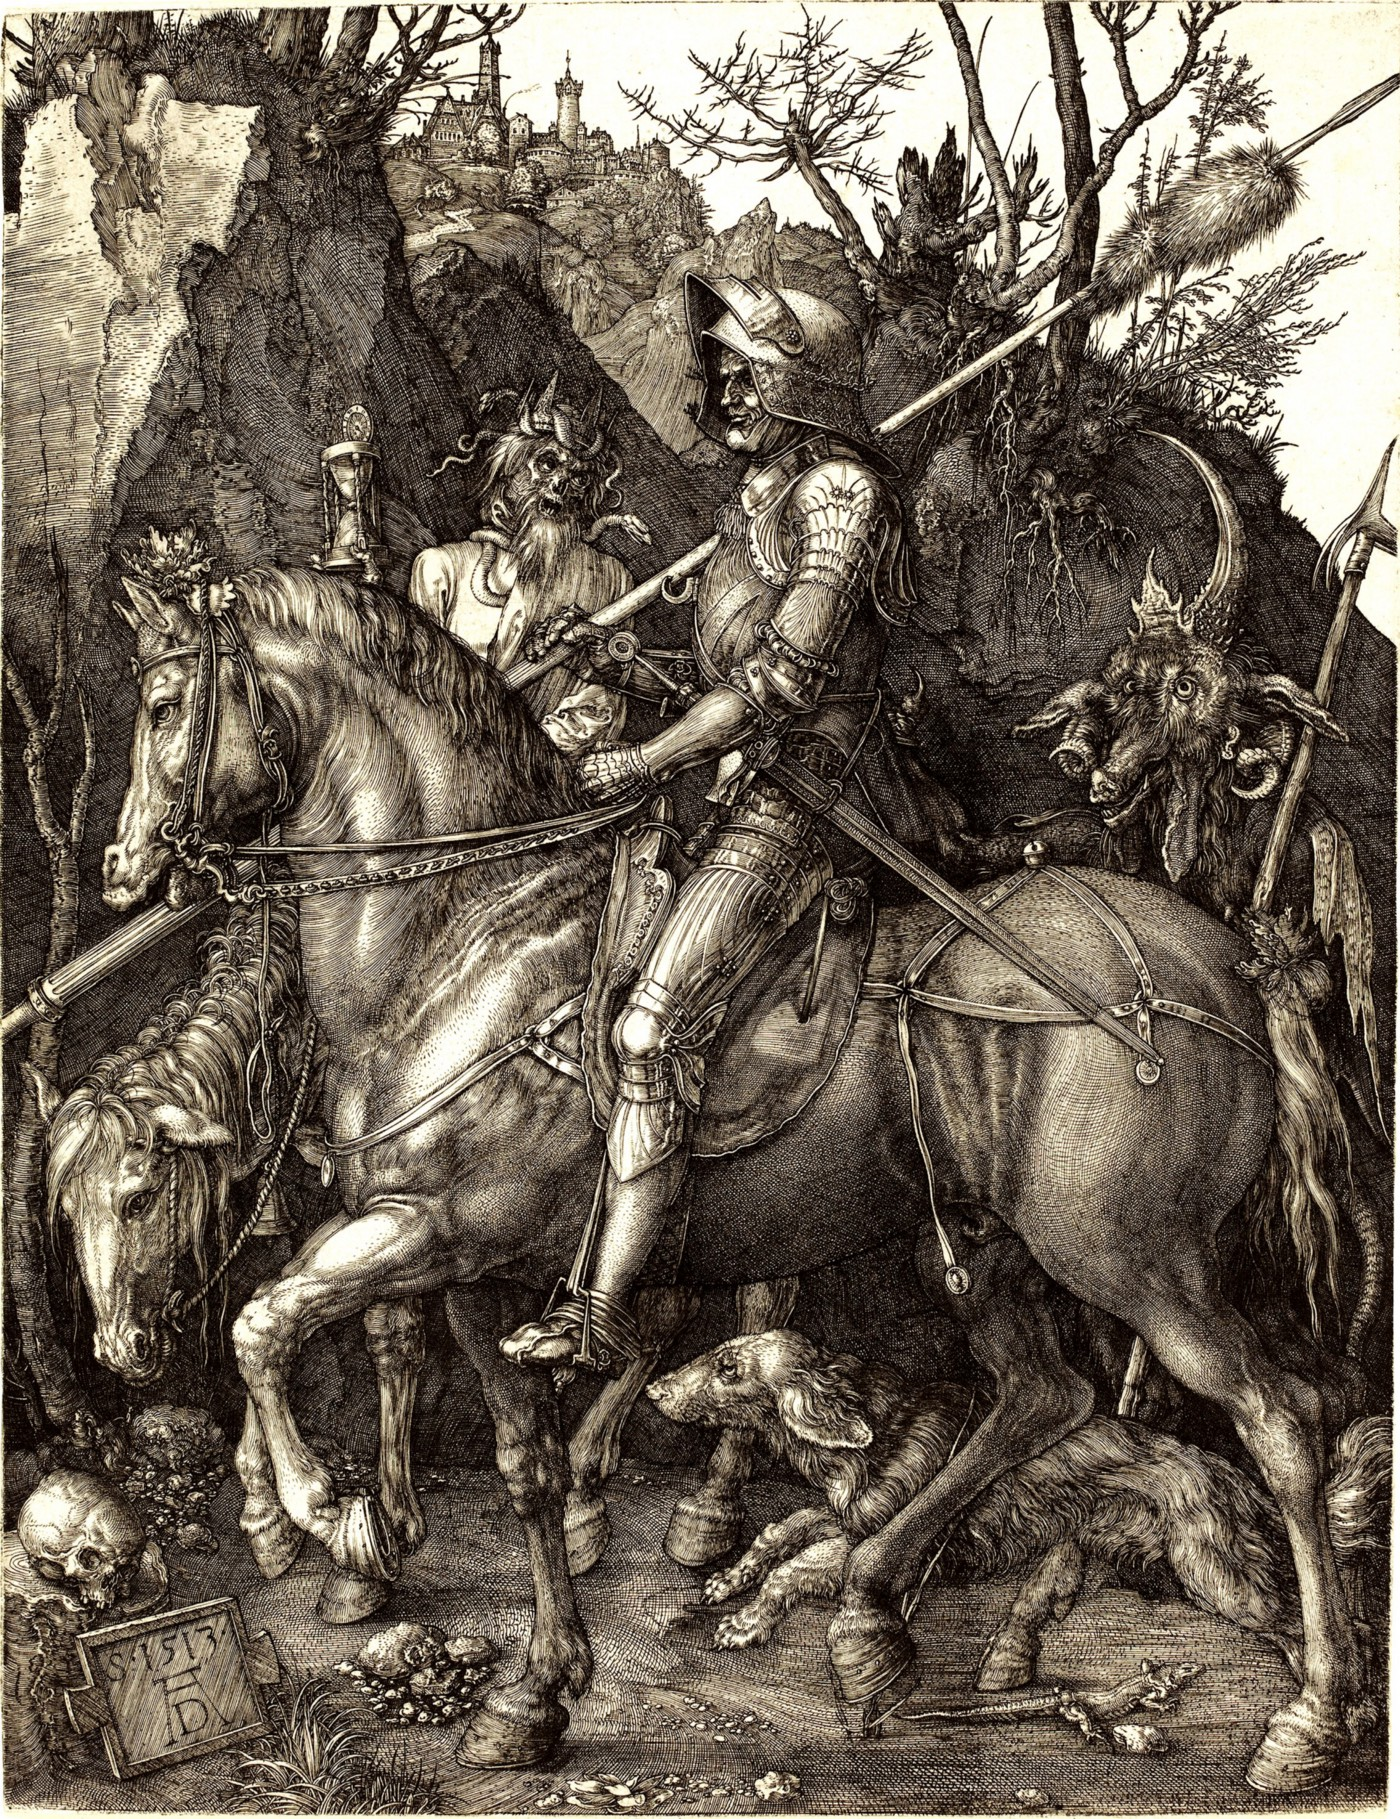 Albrecht Dürer, Knight, Death, and the Devil, 1513